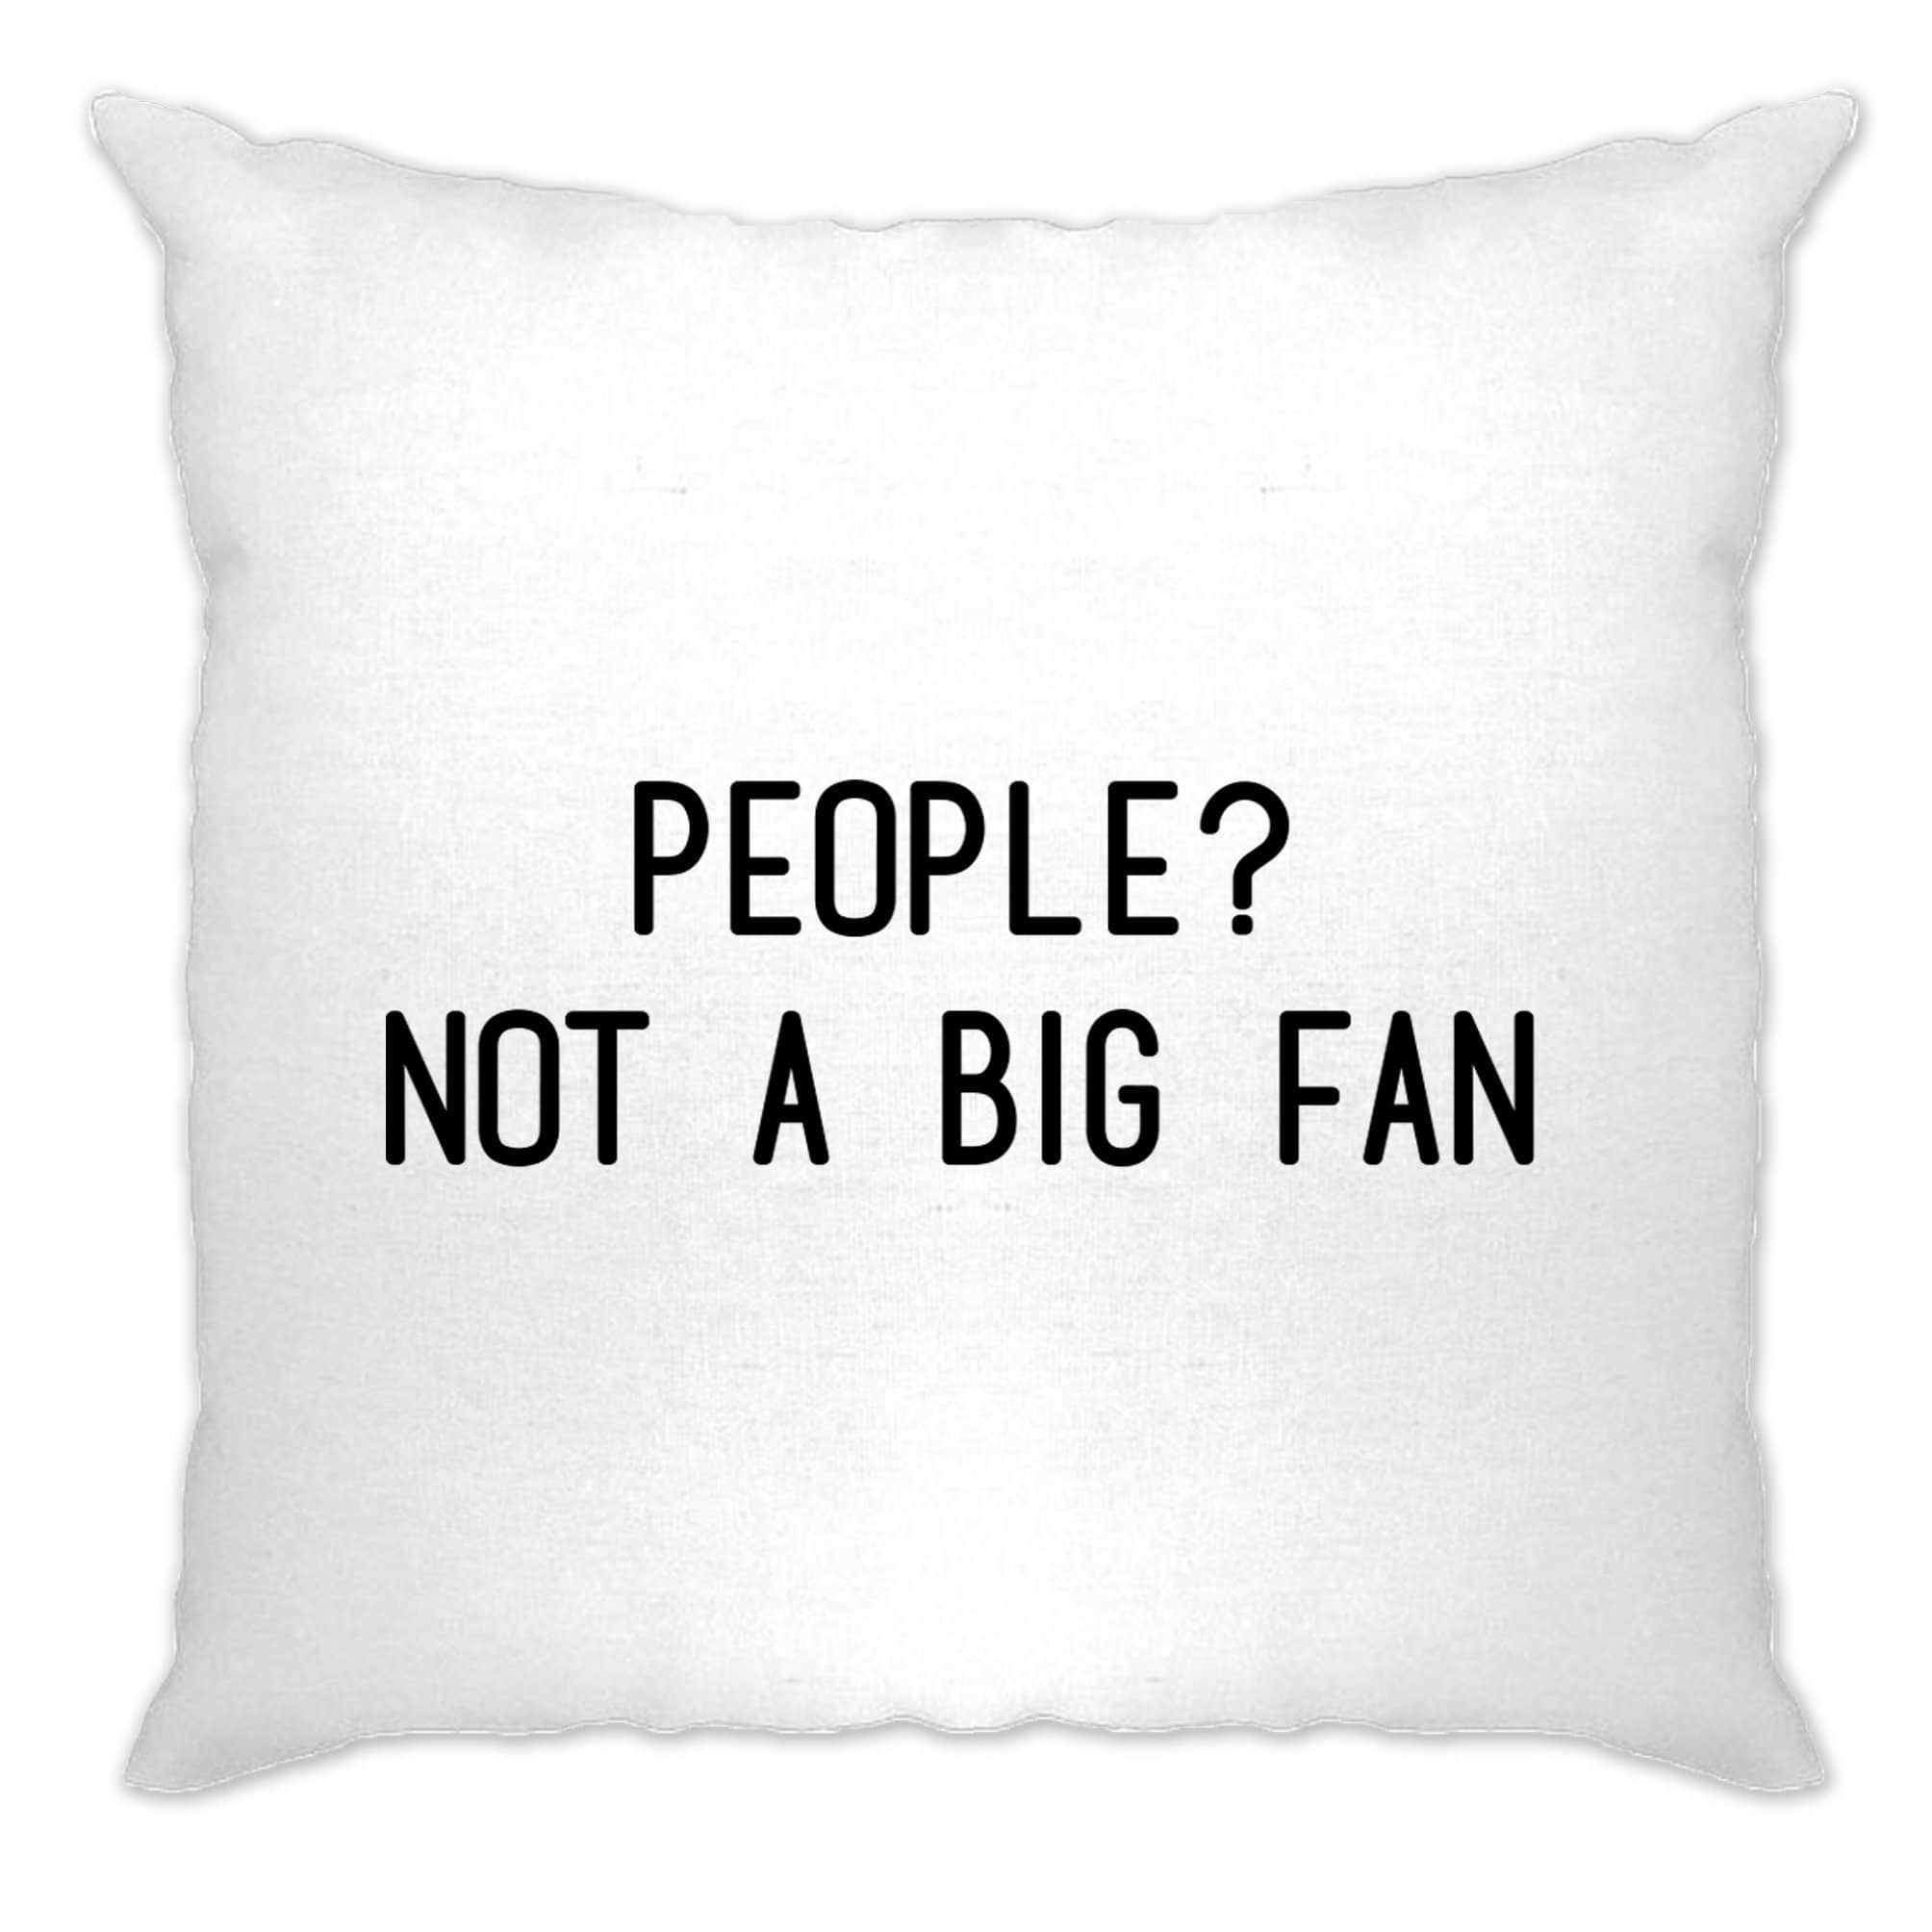 Awkward Joke Cushion Cover People? Not A Big Fan Slogan